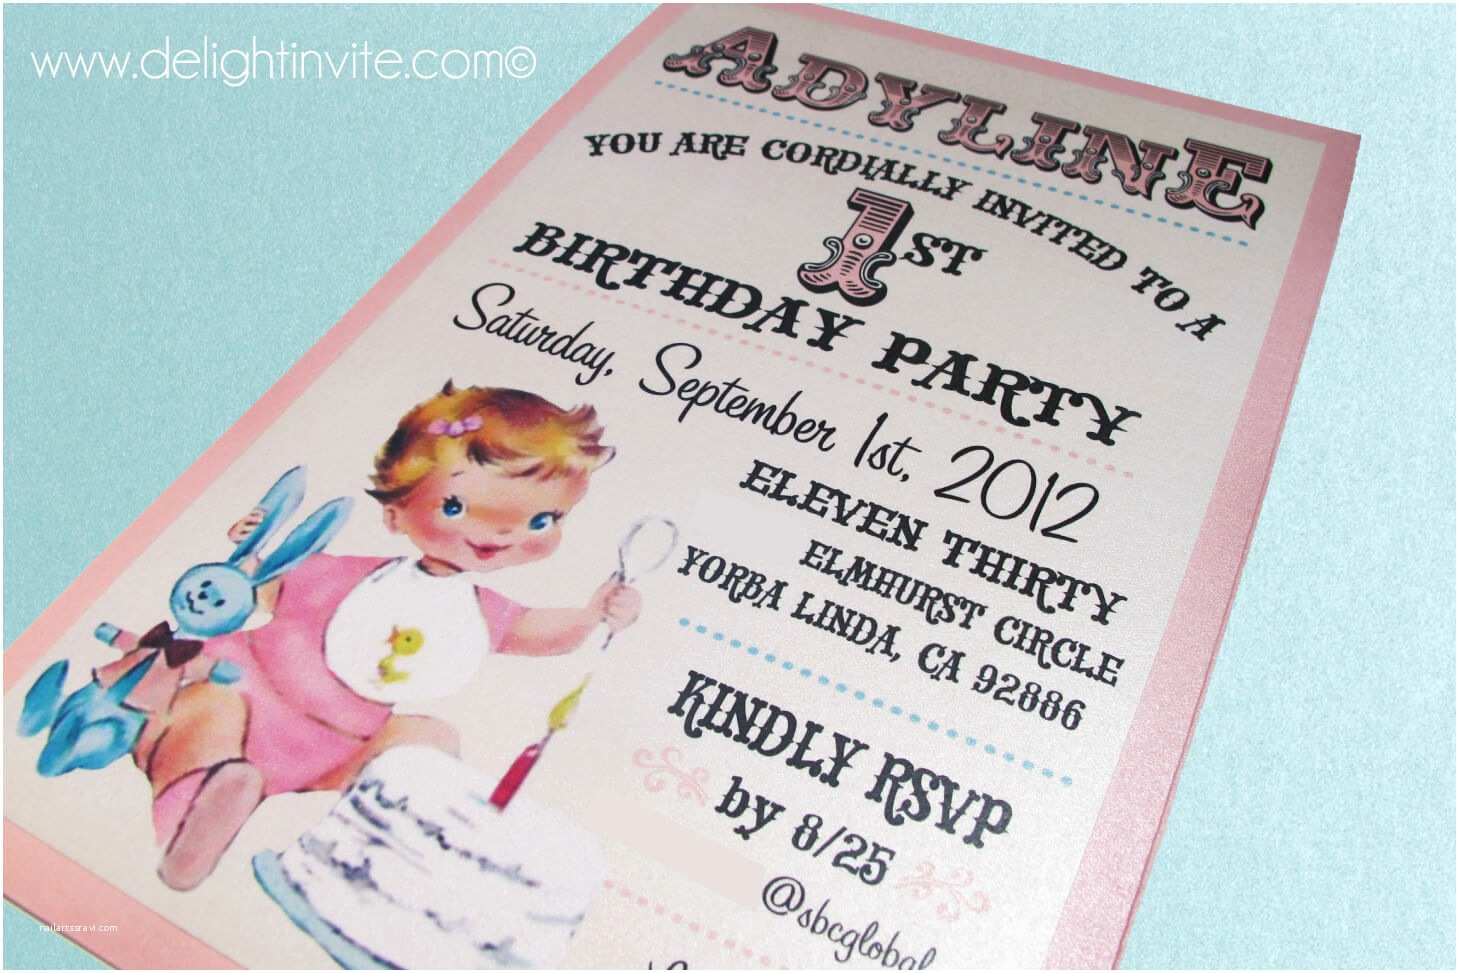 Pamper Party Invitations 1950 S Style Retro Vintage Baby S 1st Birthday